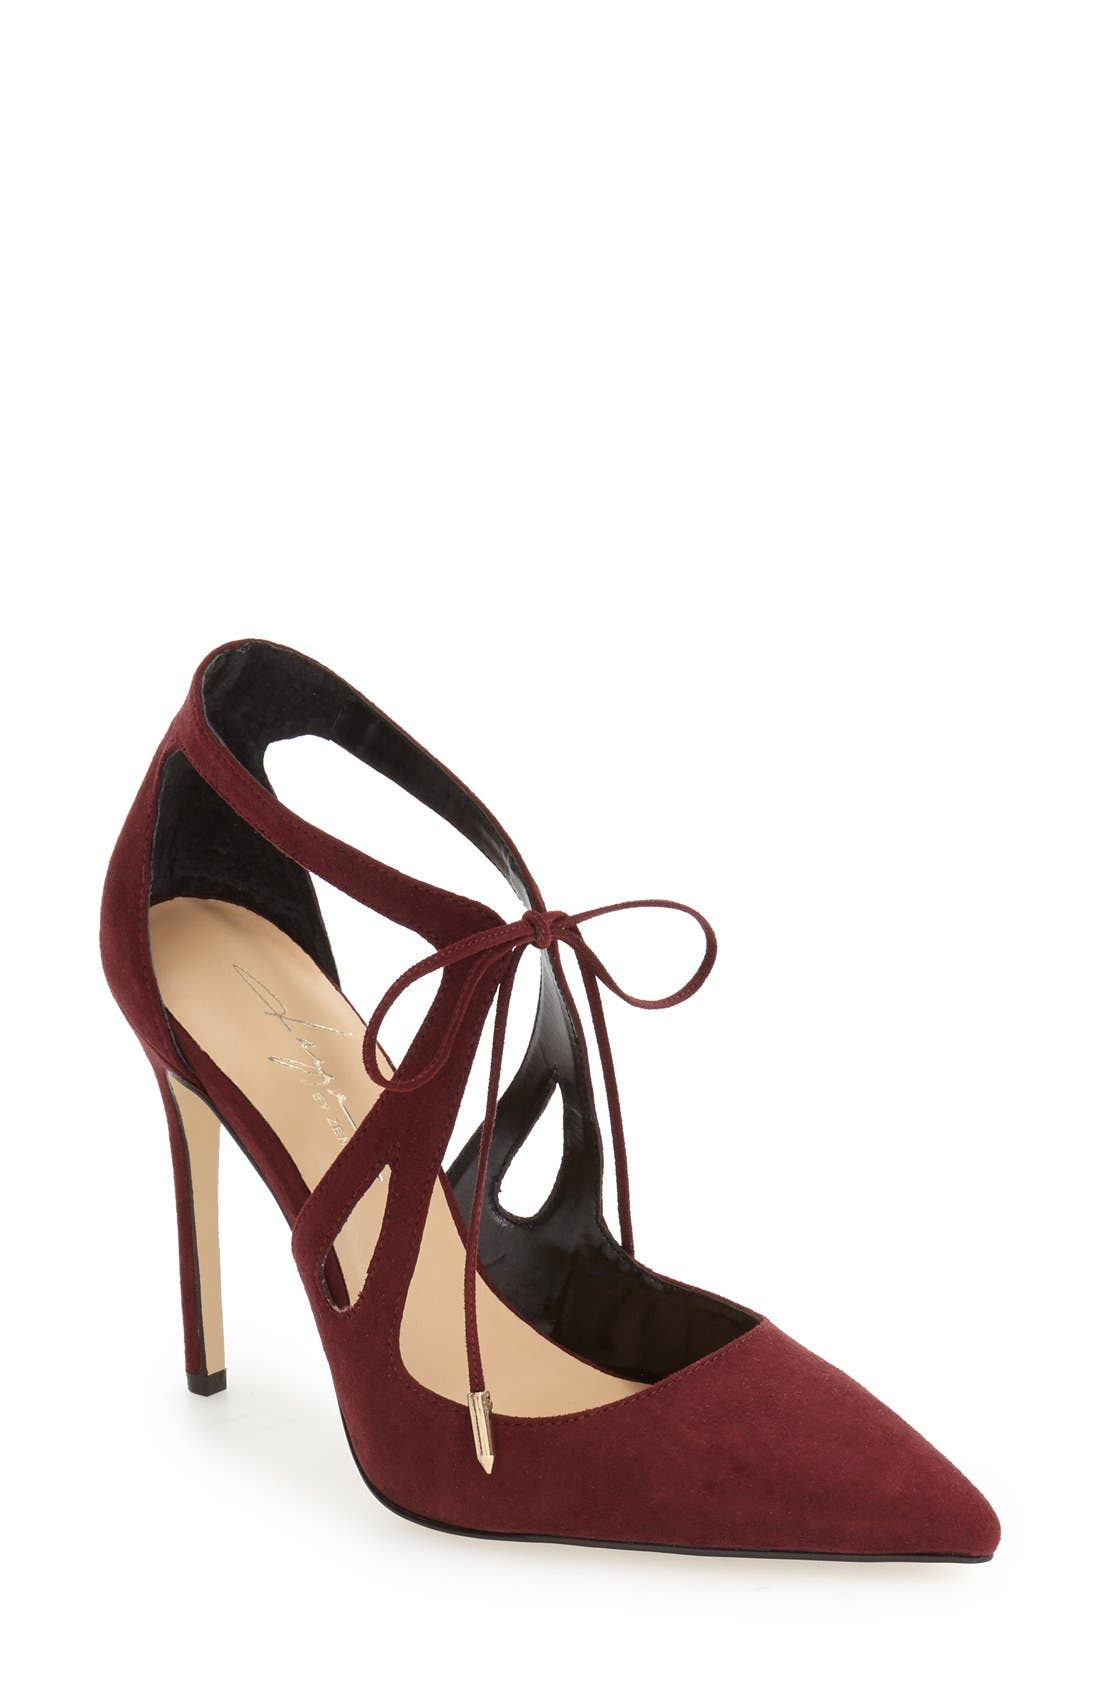 by Zendaya 'Aaron' Pointy Toe Pump,                         Main,                         color, 939